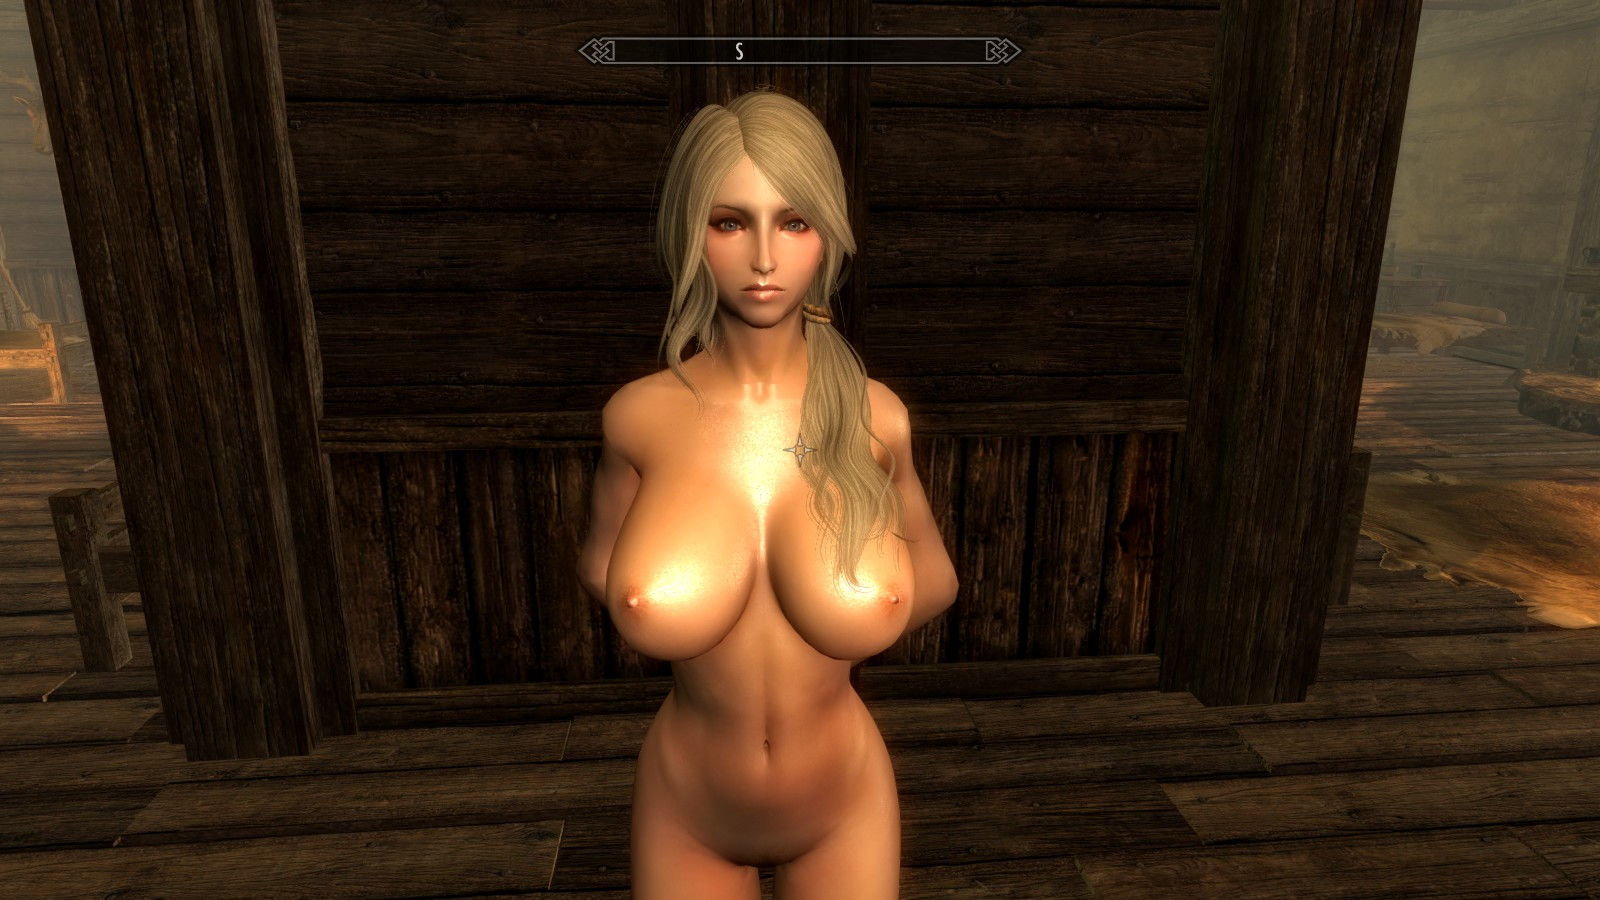 Boob picture mod sexy galleries